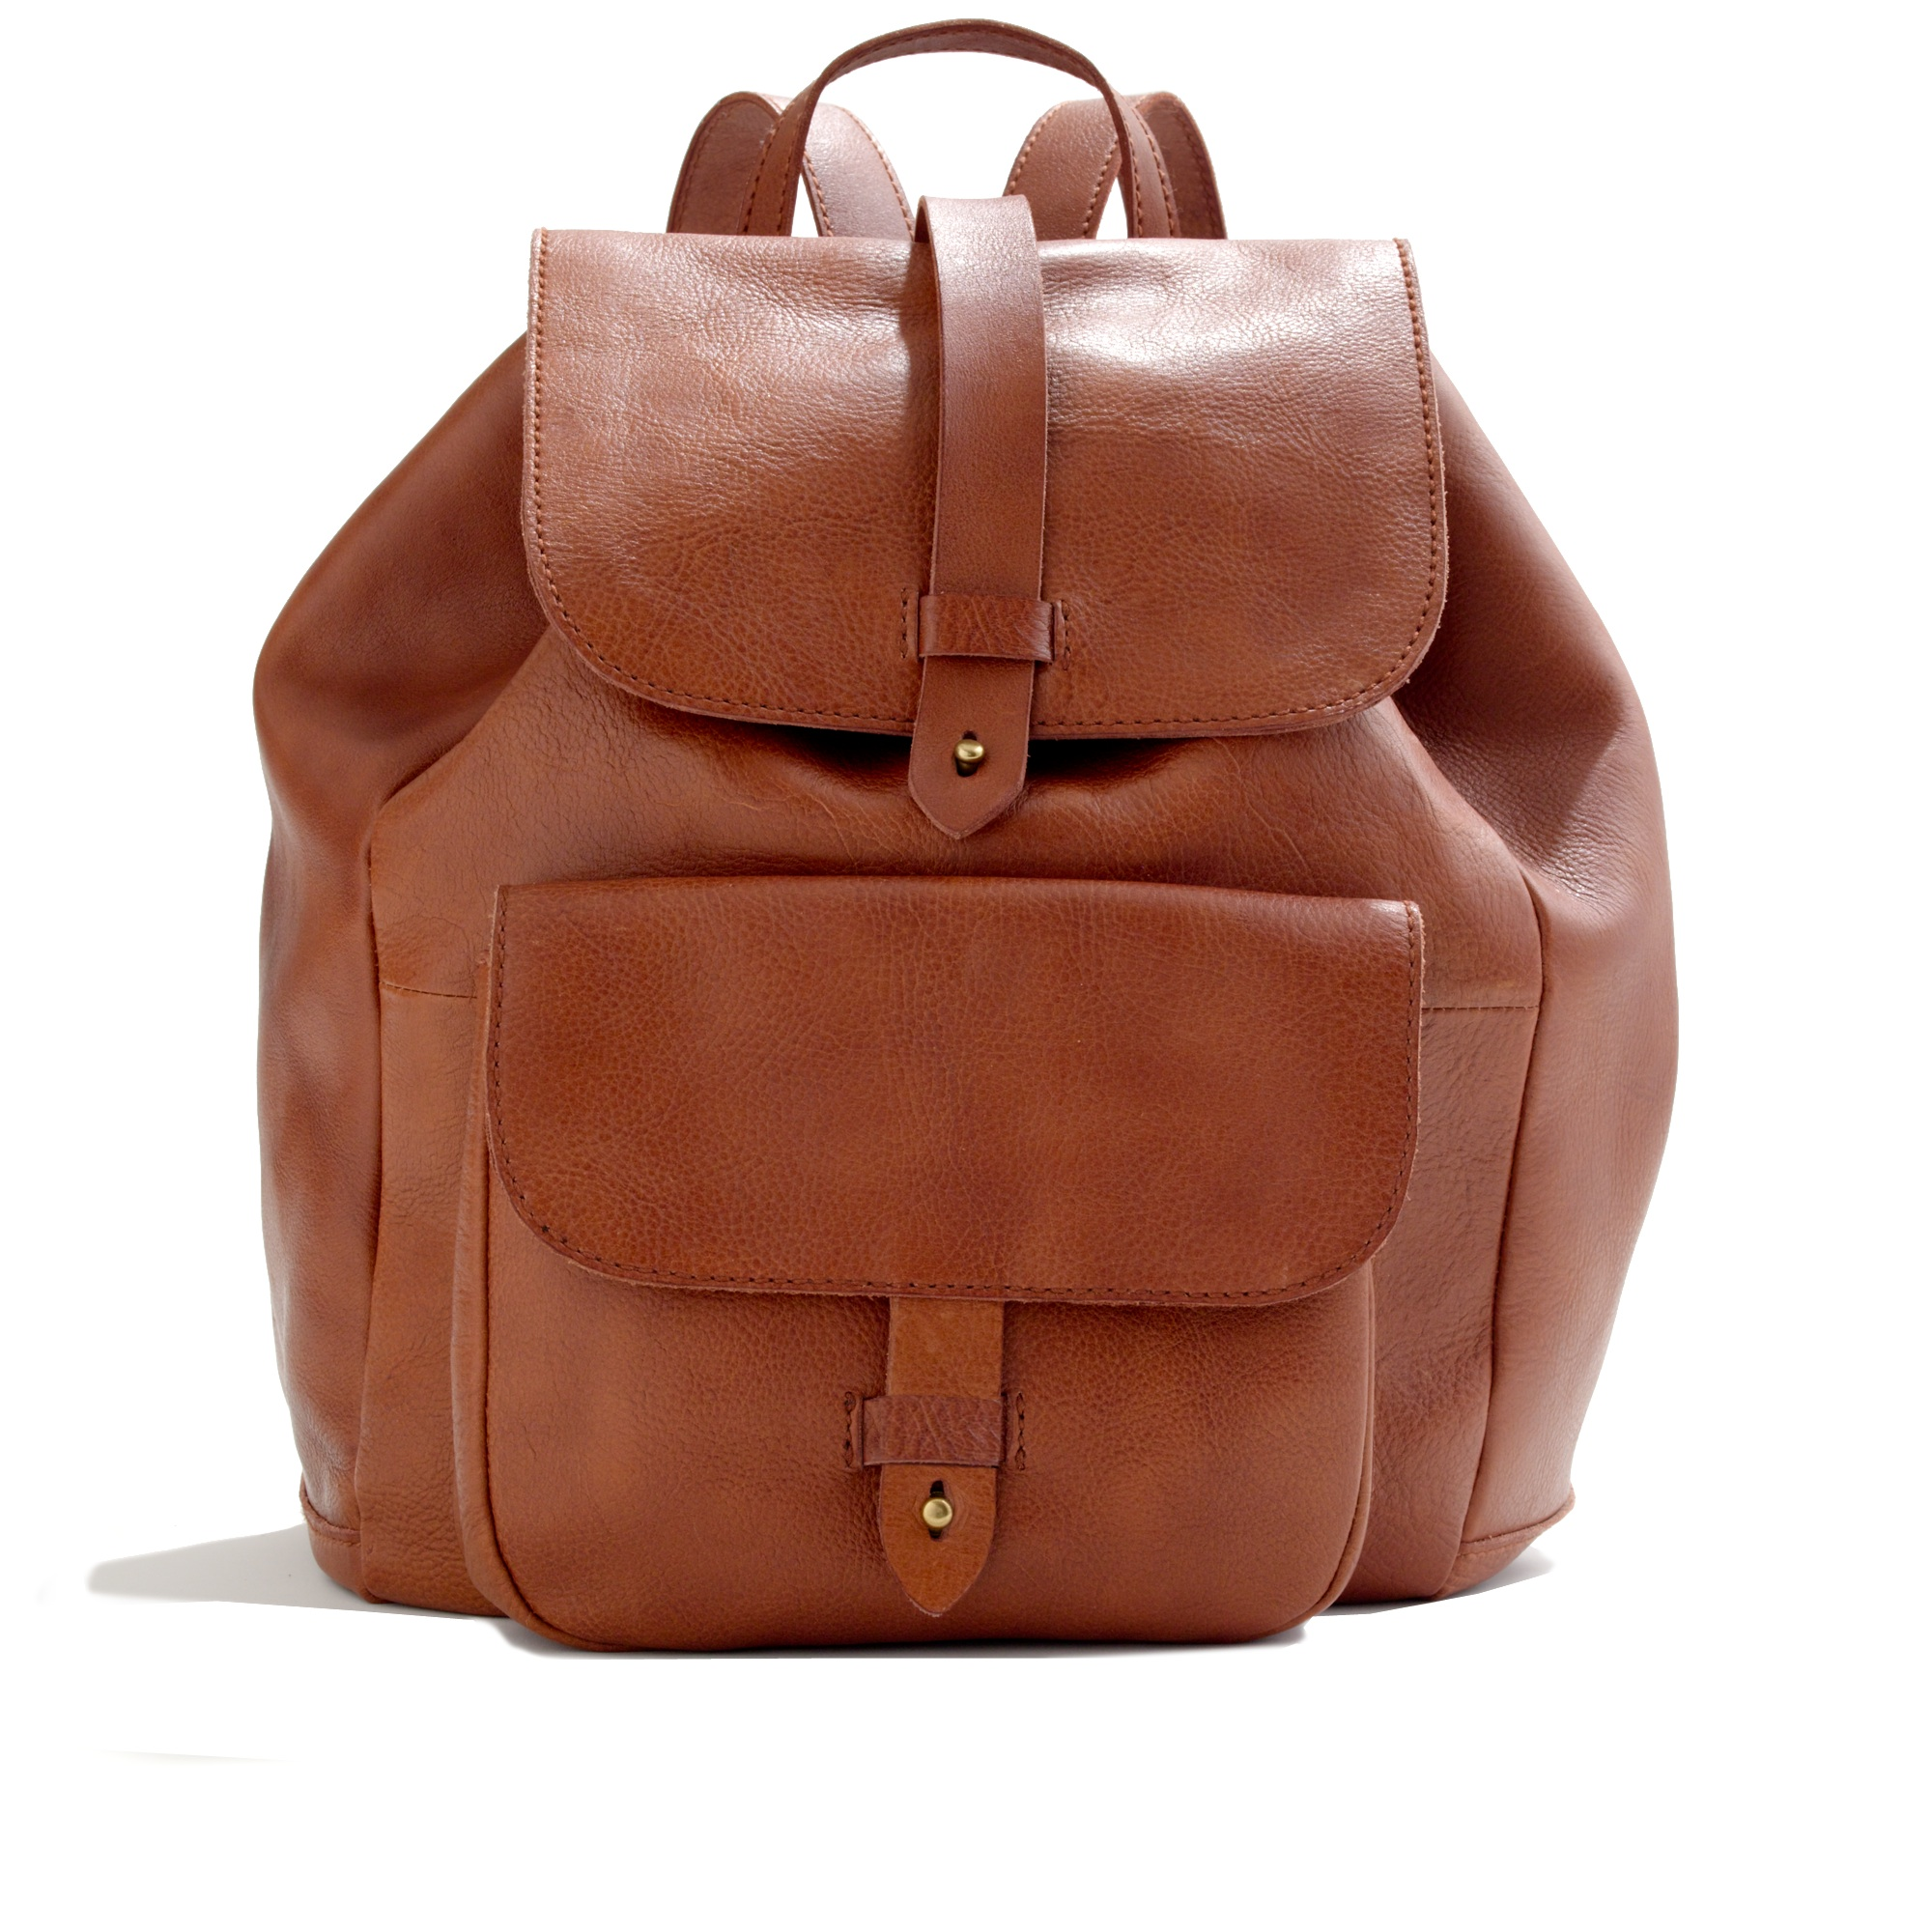 Brown Leather Backpacks VJb3khEN